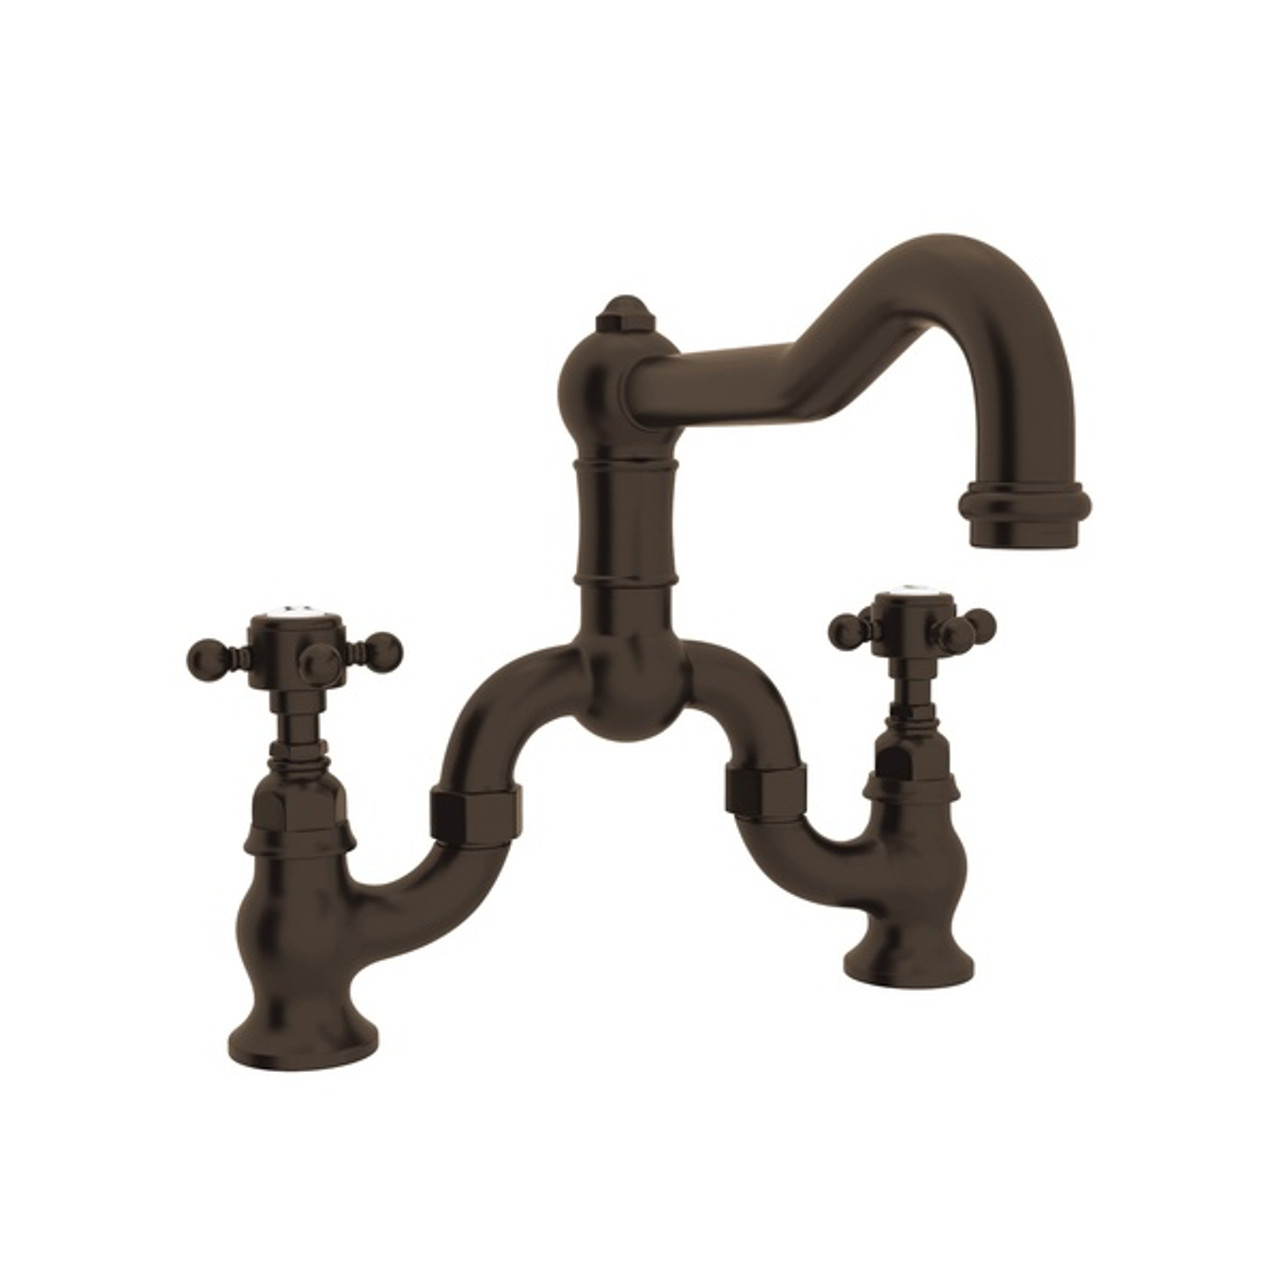 Rohl A1420XMTCB-2 Italian Kitchen Acqui Bridge Faucet With Double-Cross  Handle